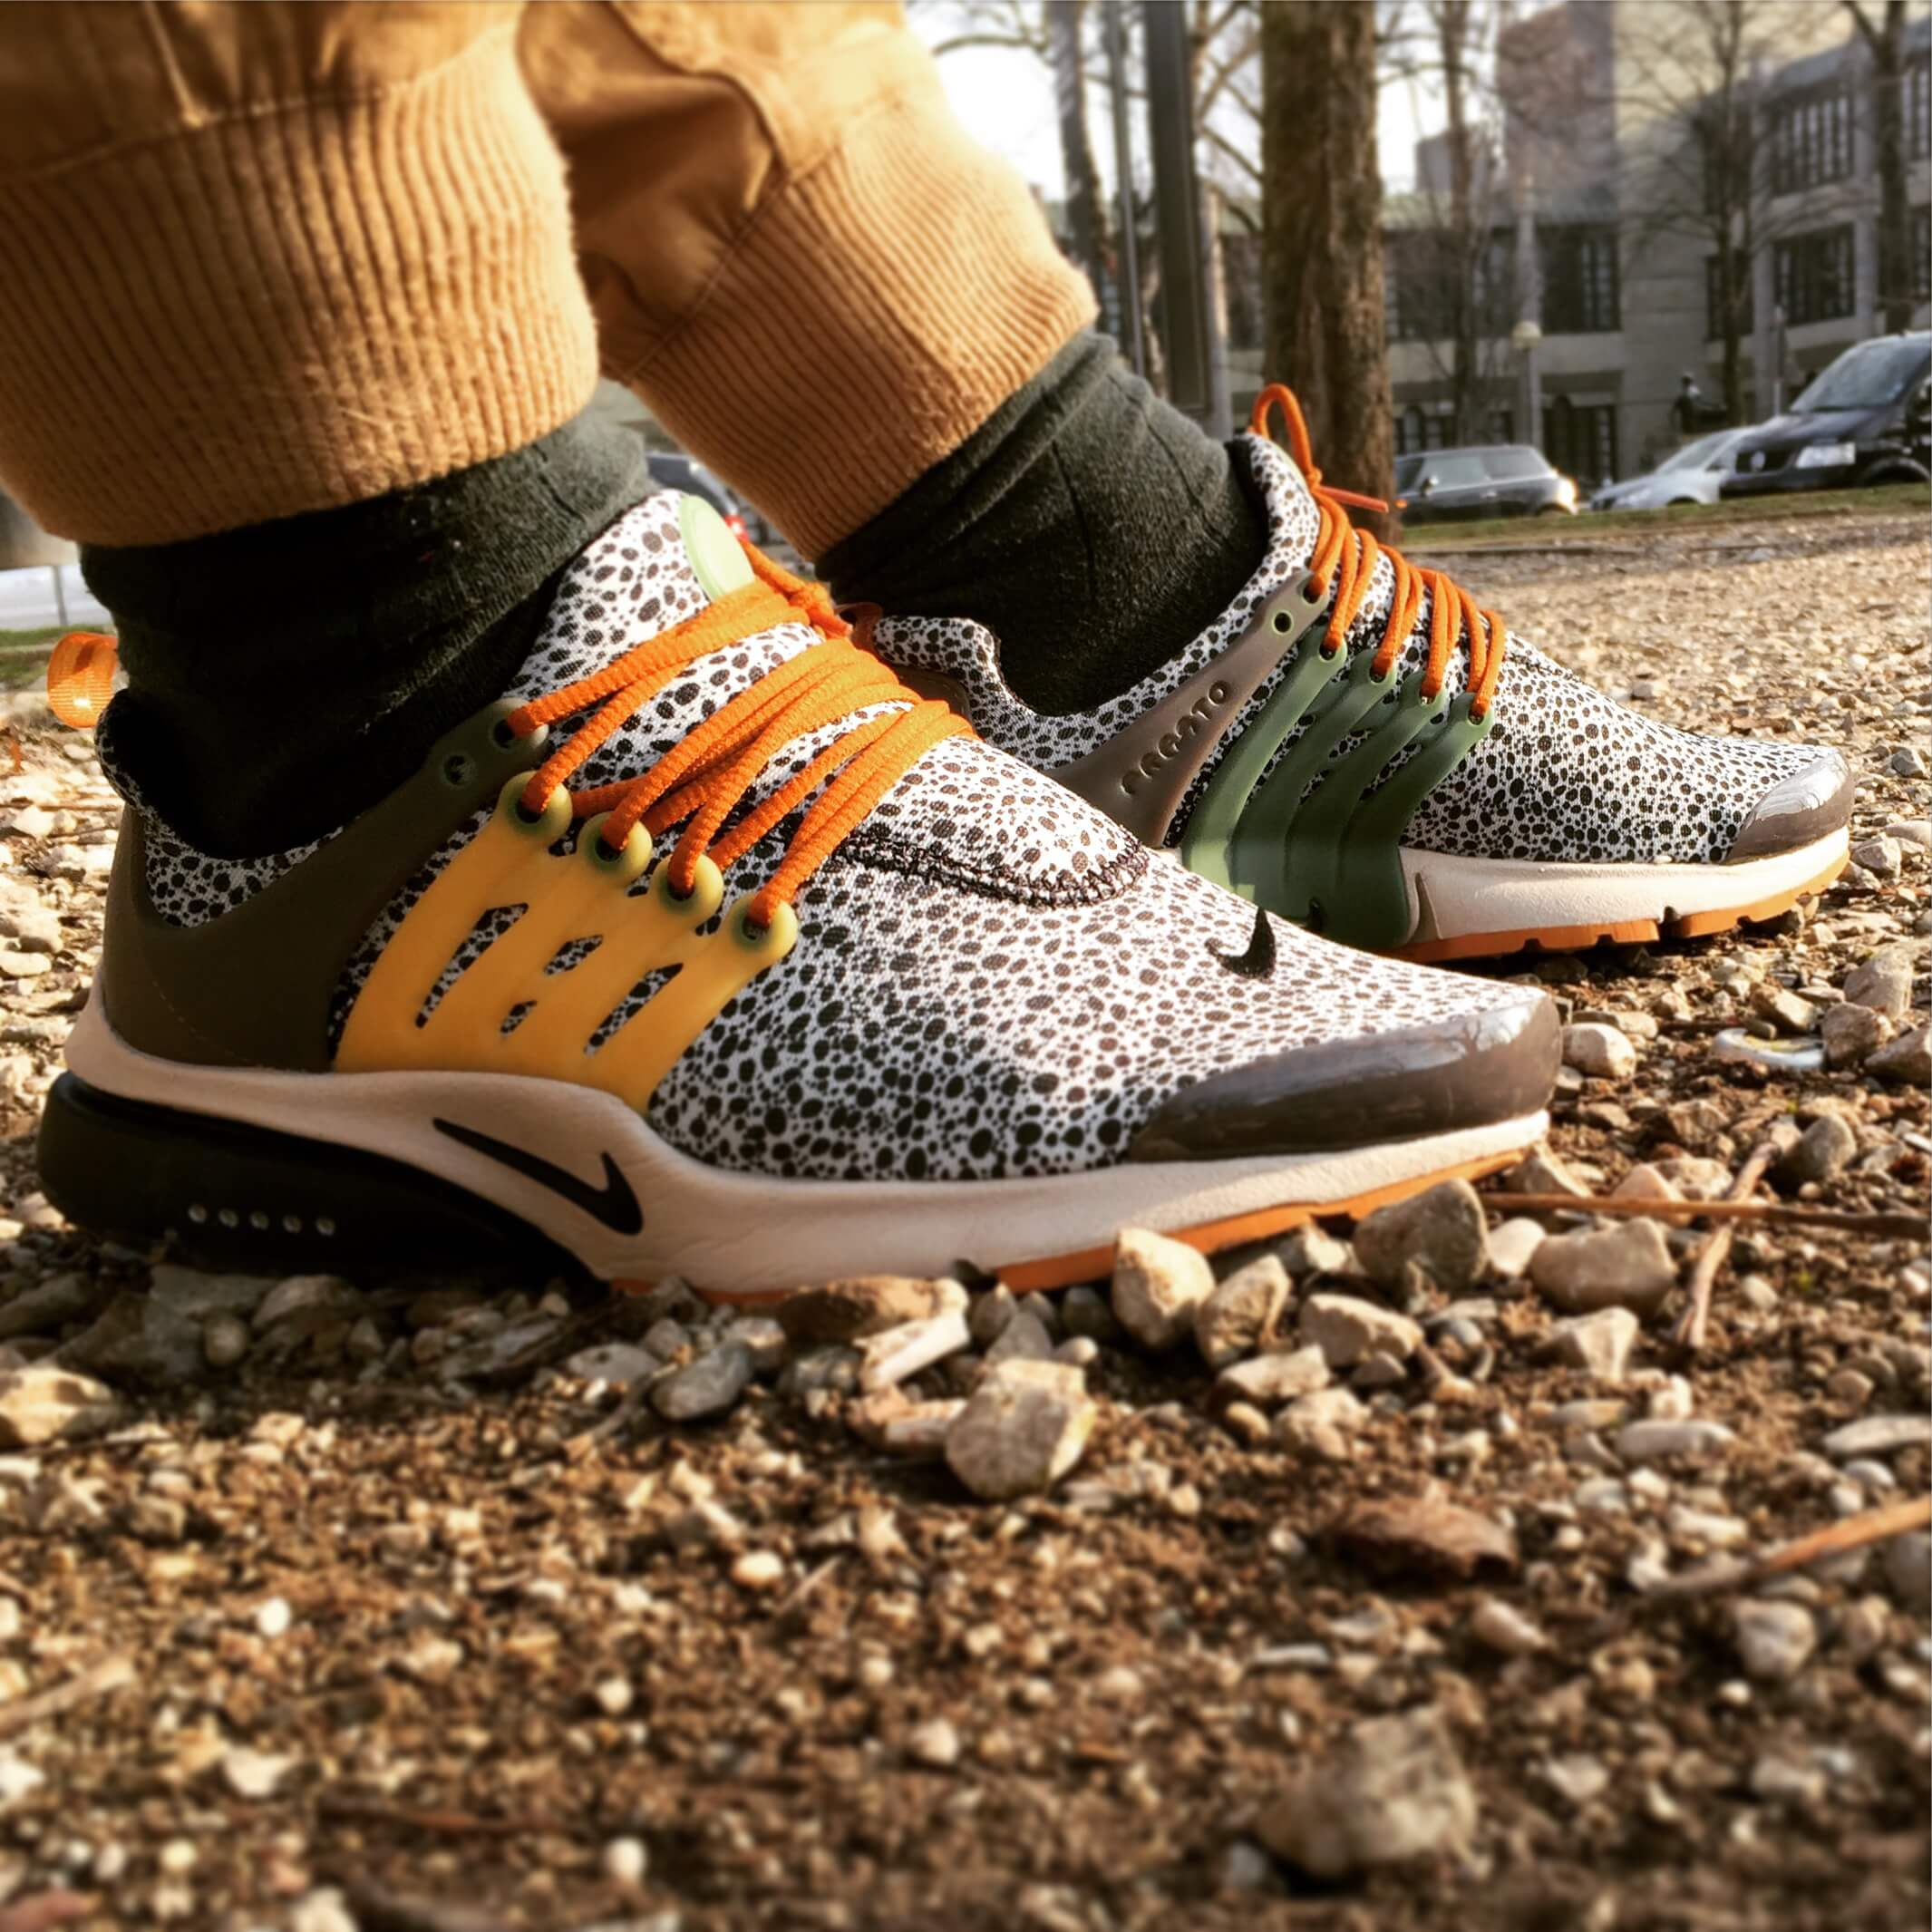 Nike-Presto-QS-Safari-Side-View-Benstah-Onfeet